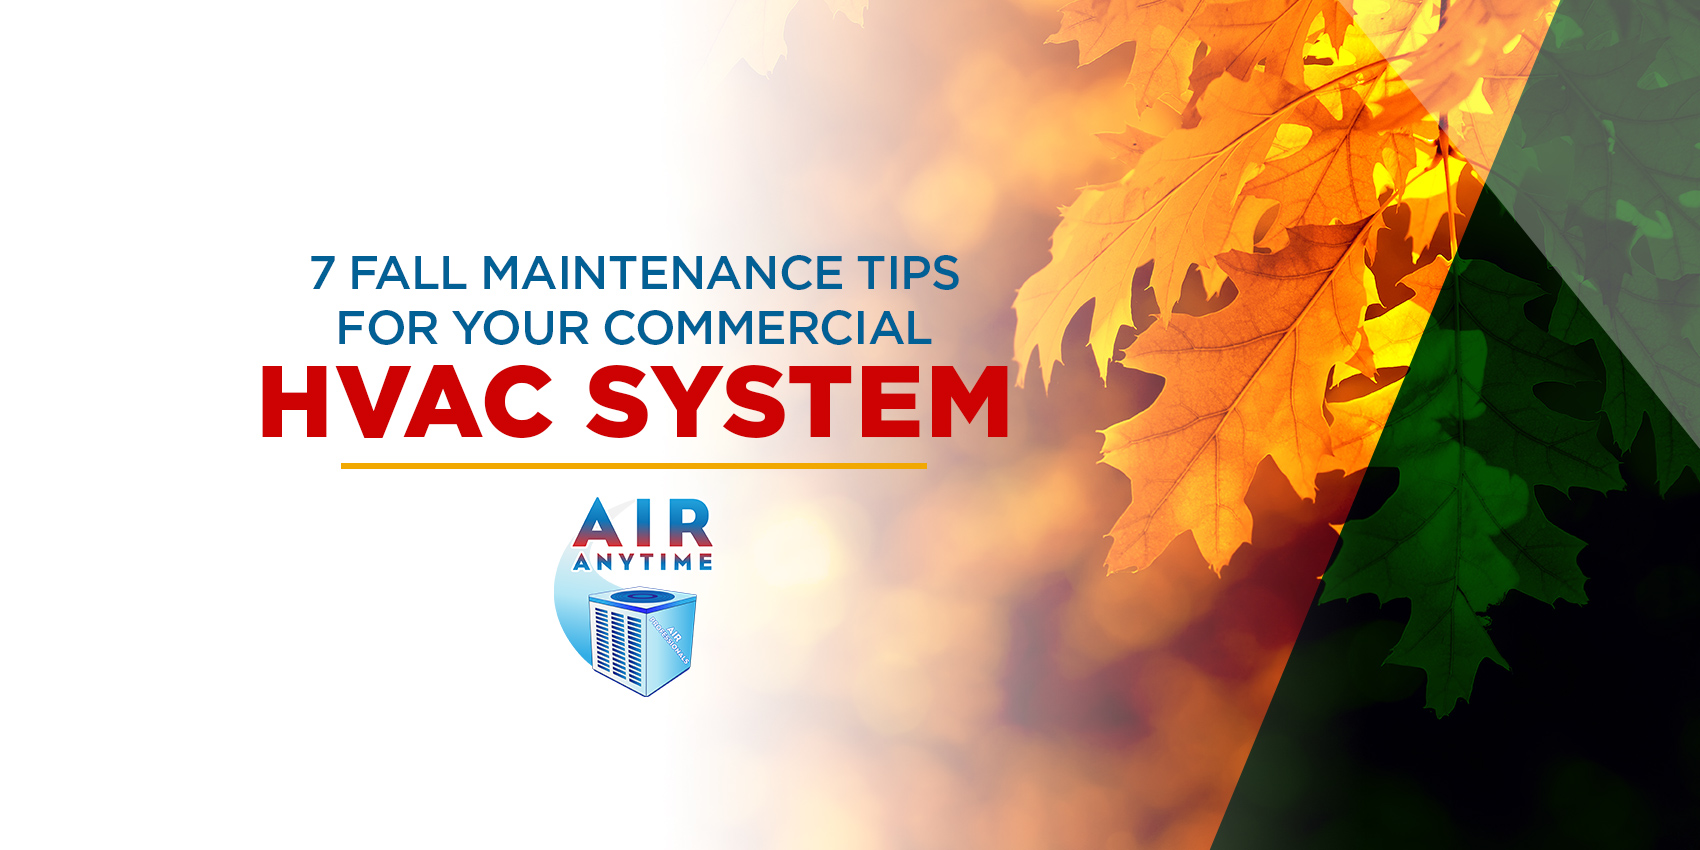 Maintenance Tips for Your Commercial HVAC System